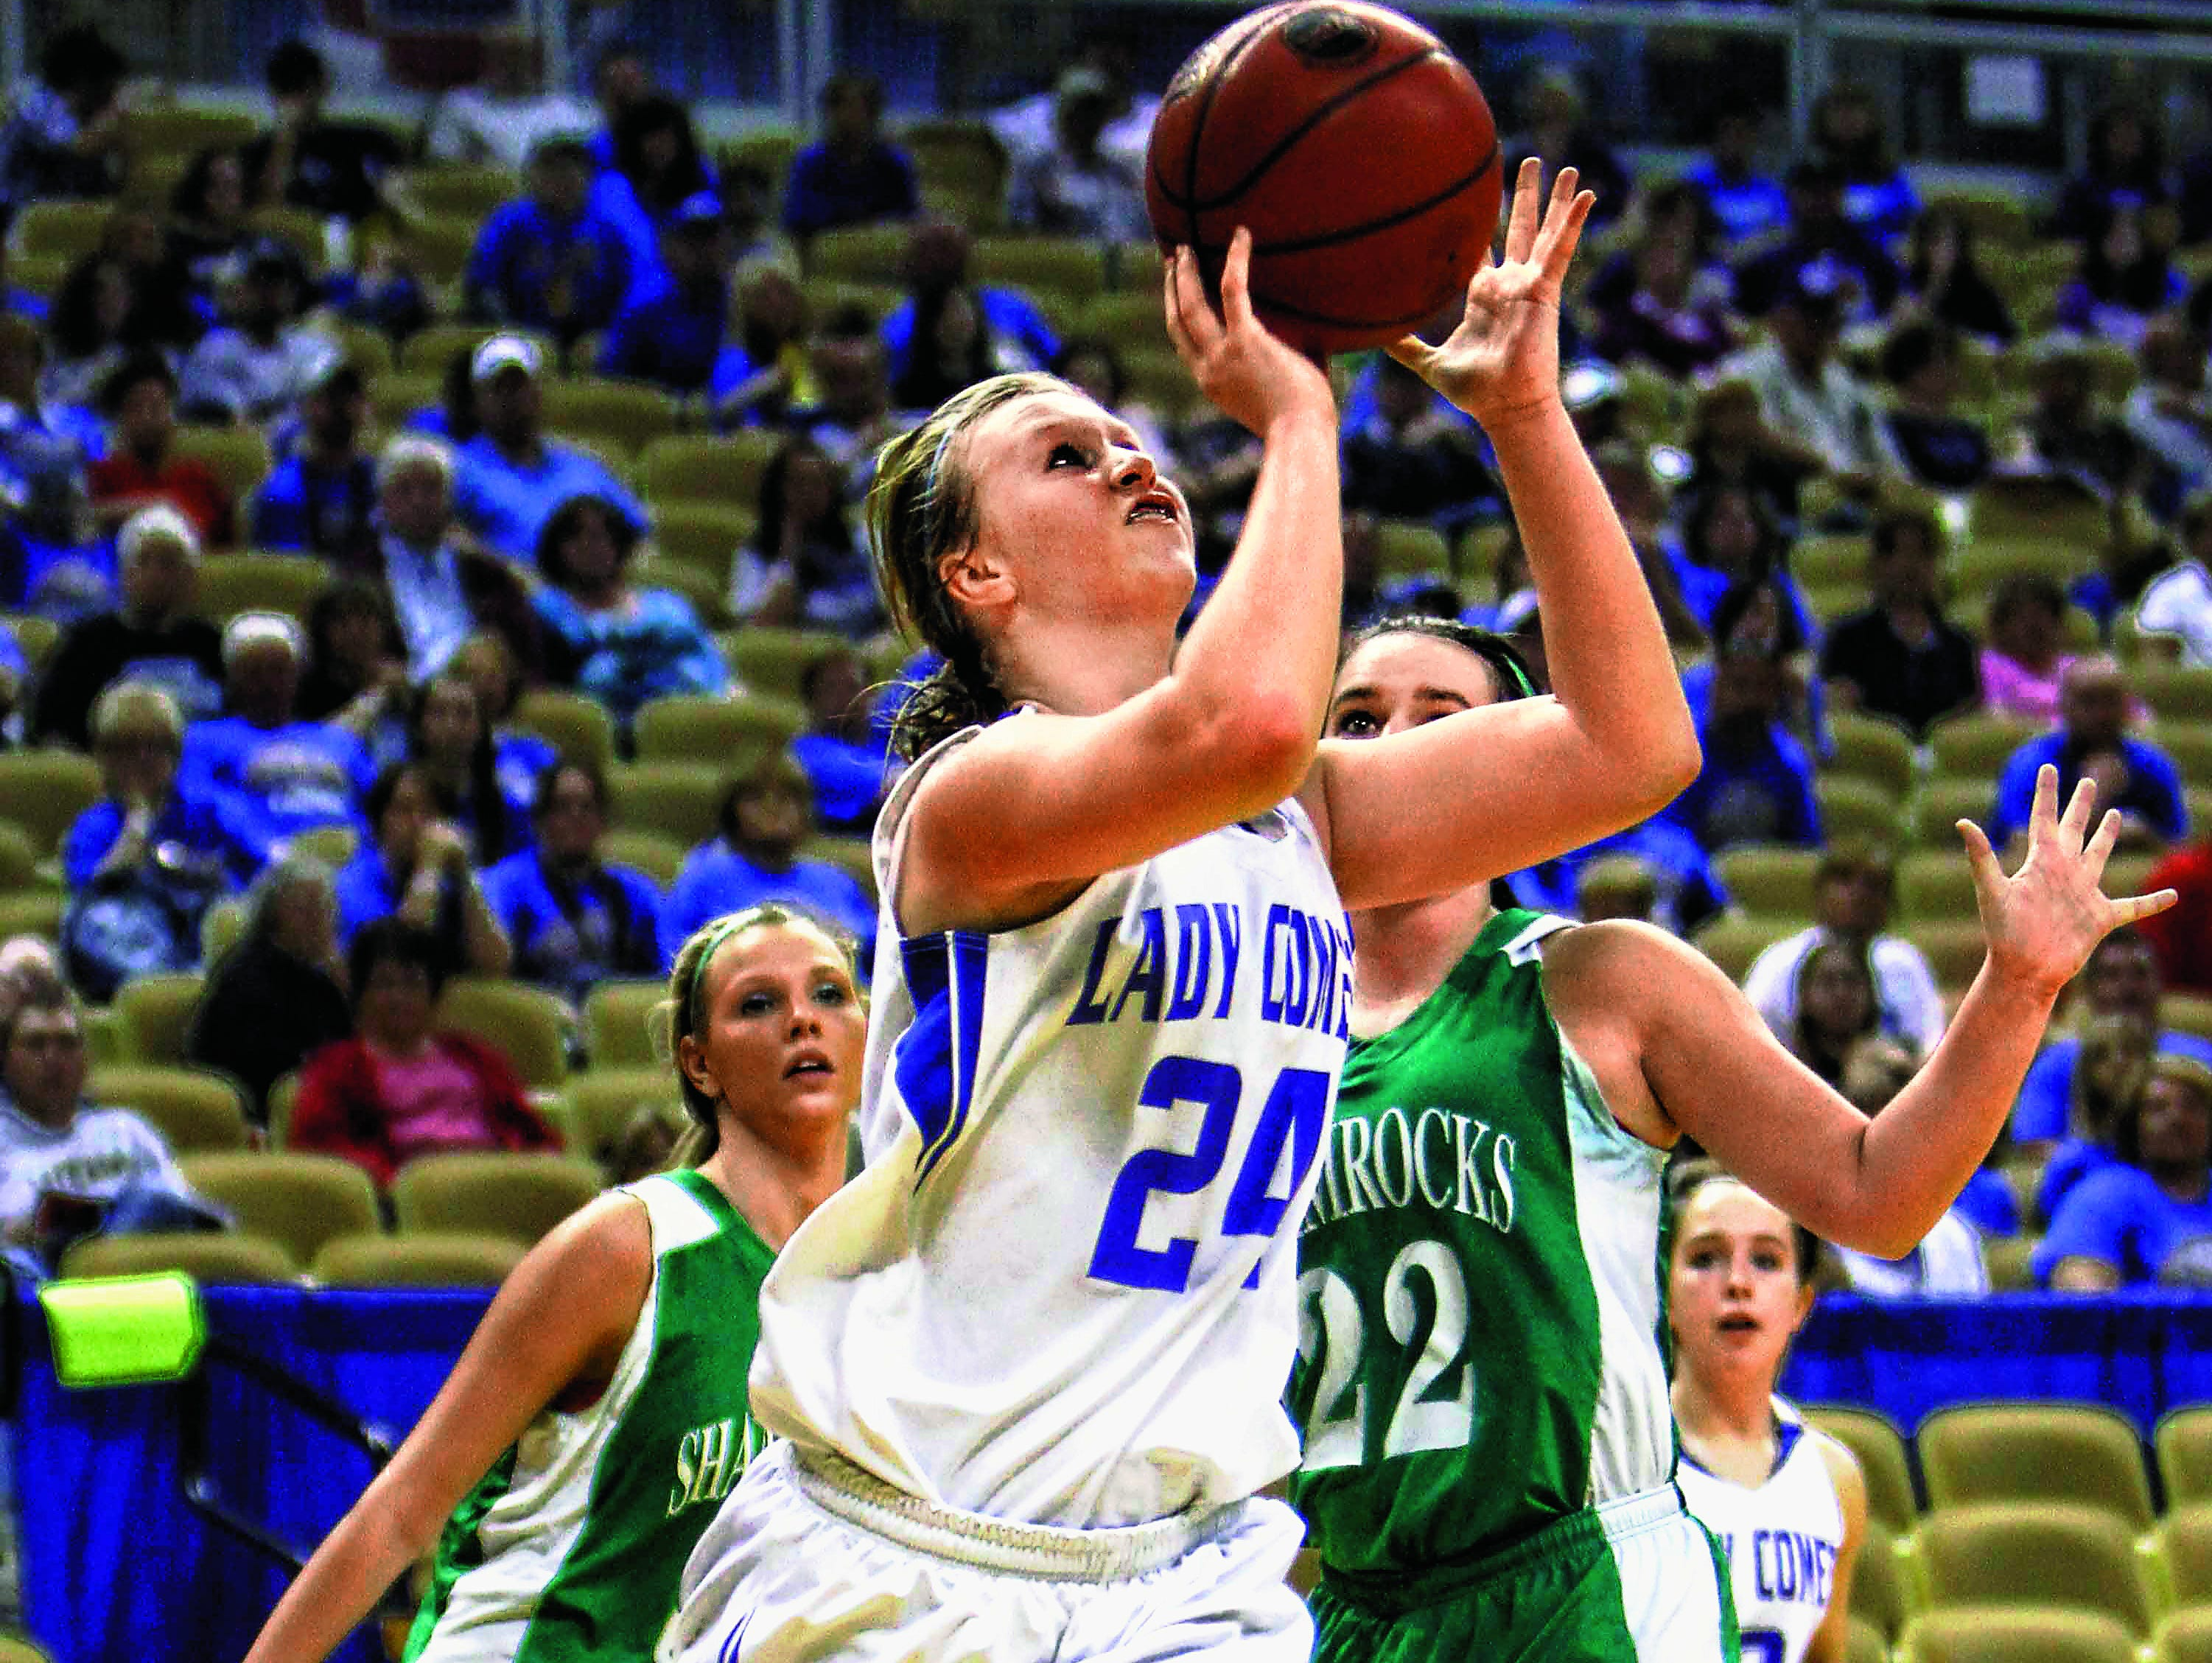 Four-time all-state basketball player Josie Young of Marionville is up for consideration for the Miss Show-Me Basketball award by the Missouri Basketball Coaches Association.